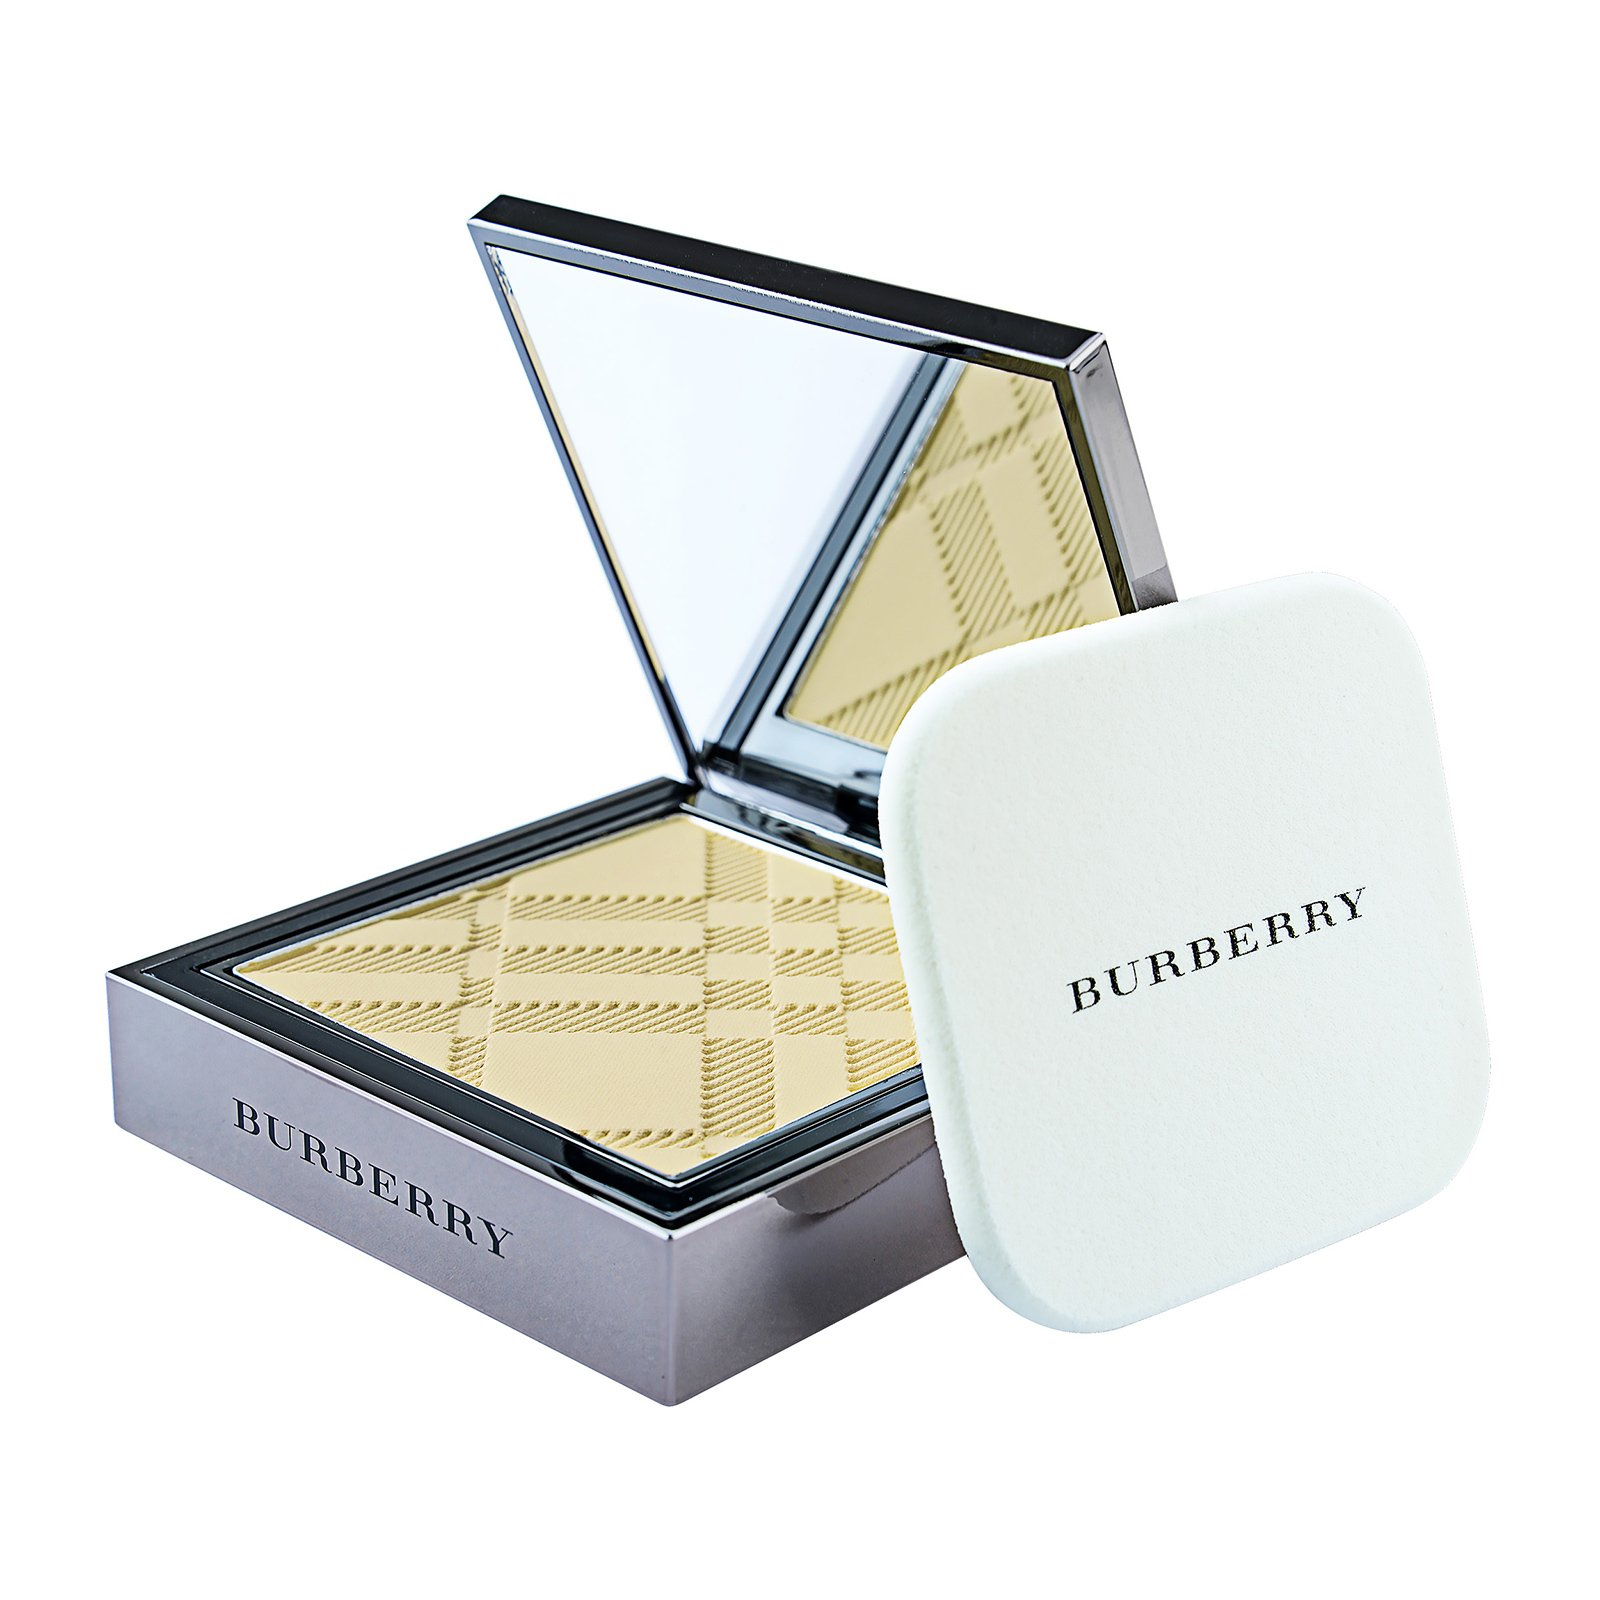 Burberry Fresh Glow Compact Luminous Foundation No. 20 Ochre, 0.28oz, 8g